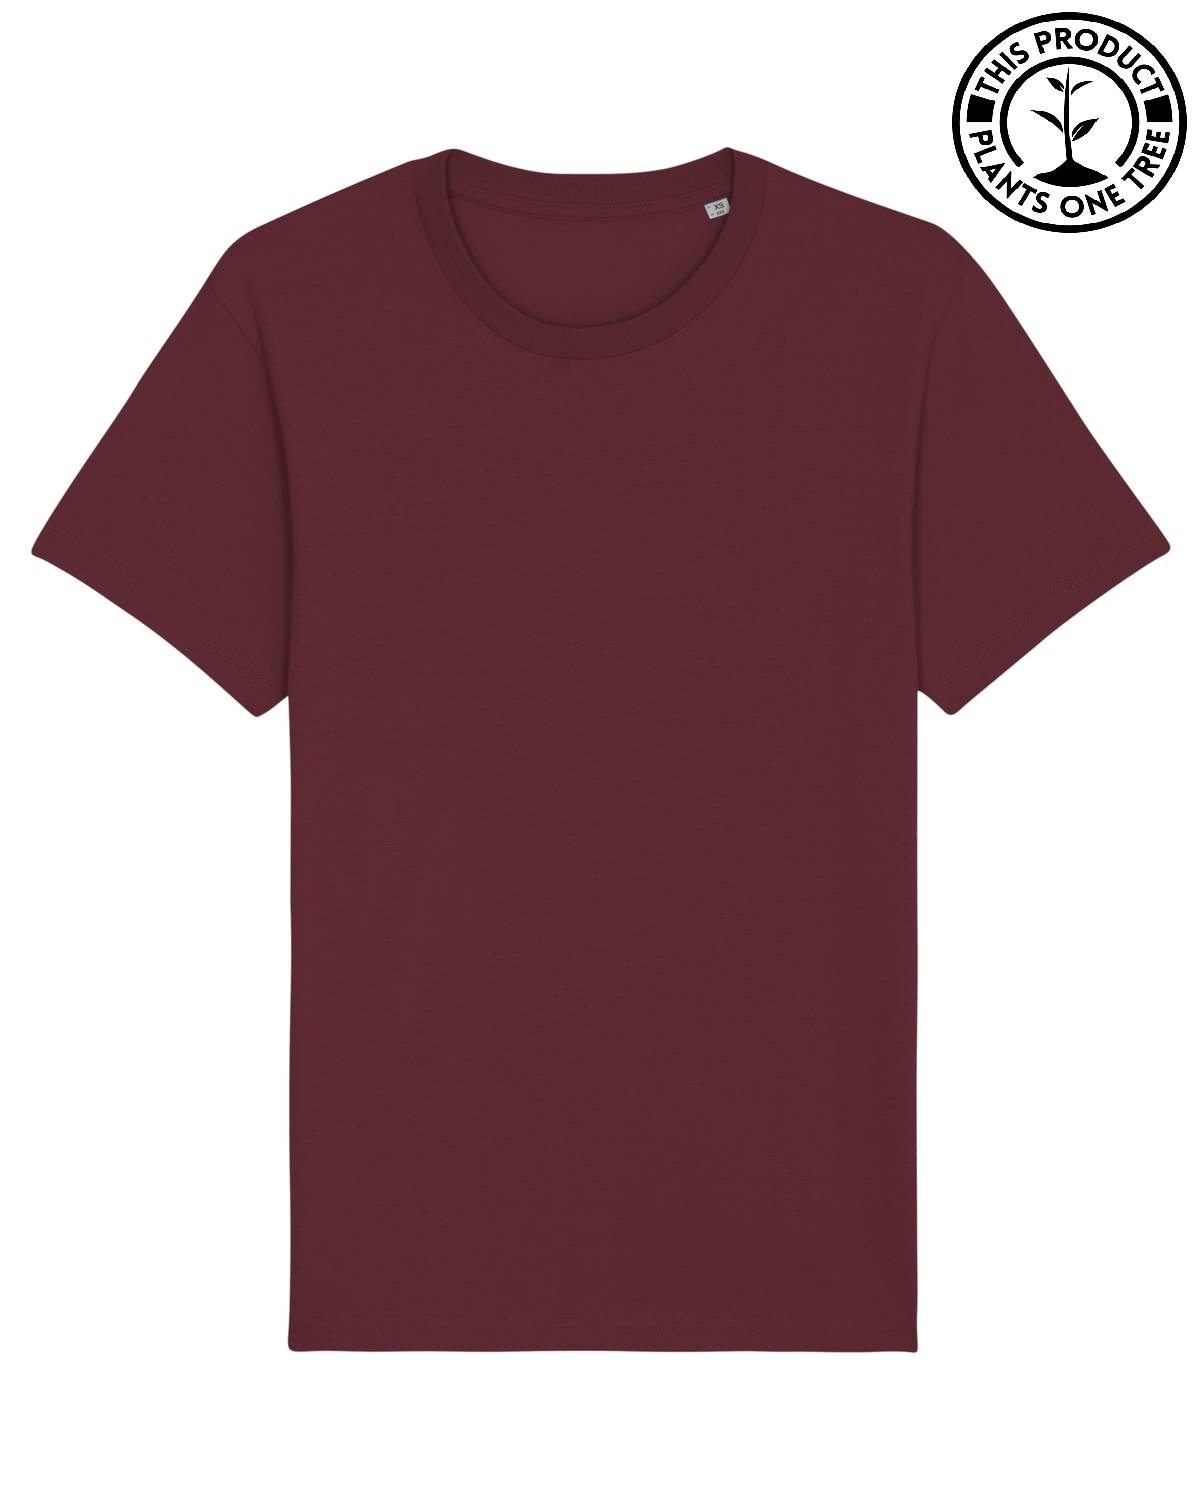 Basic Unisex T-shirt Burgundy